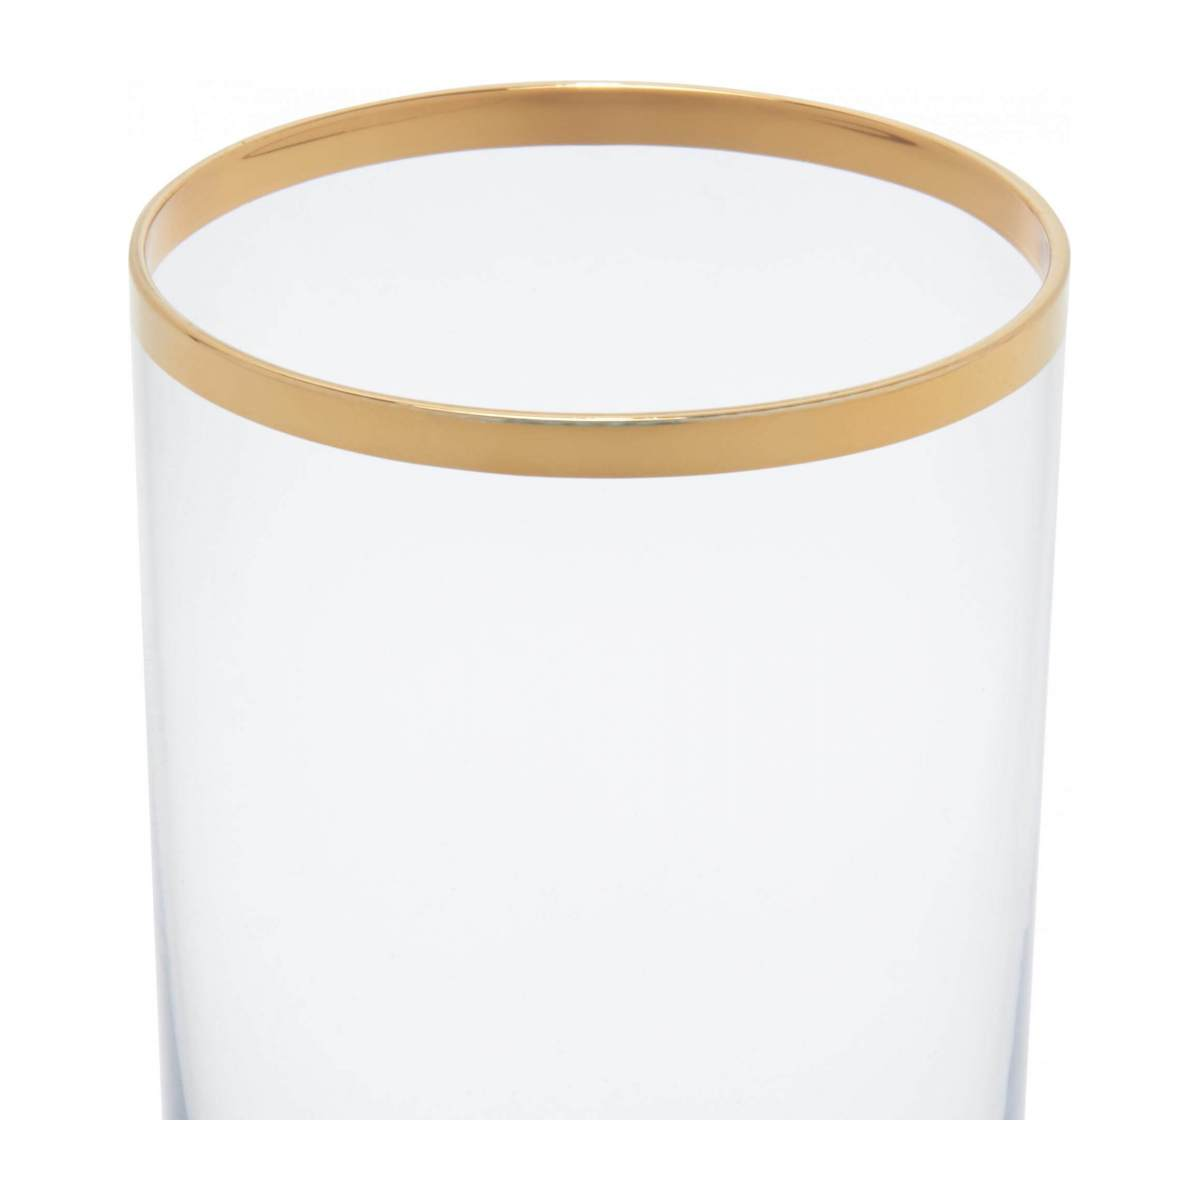 Tumbler made of glass haut, with gold edge n°2